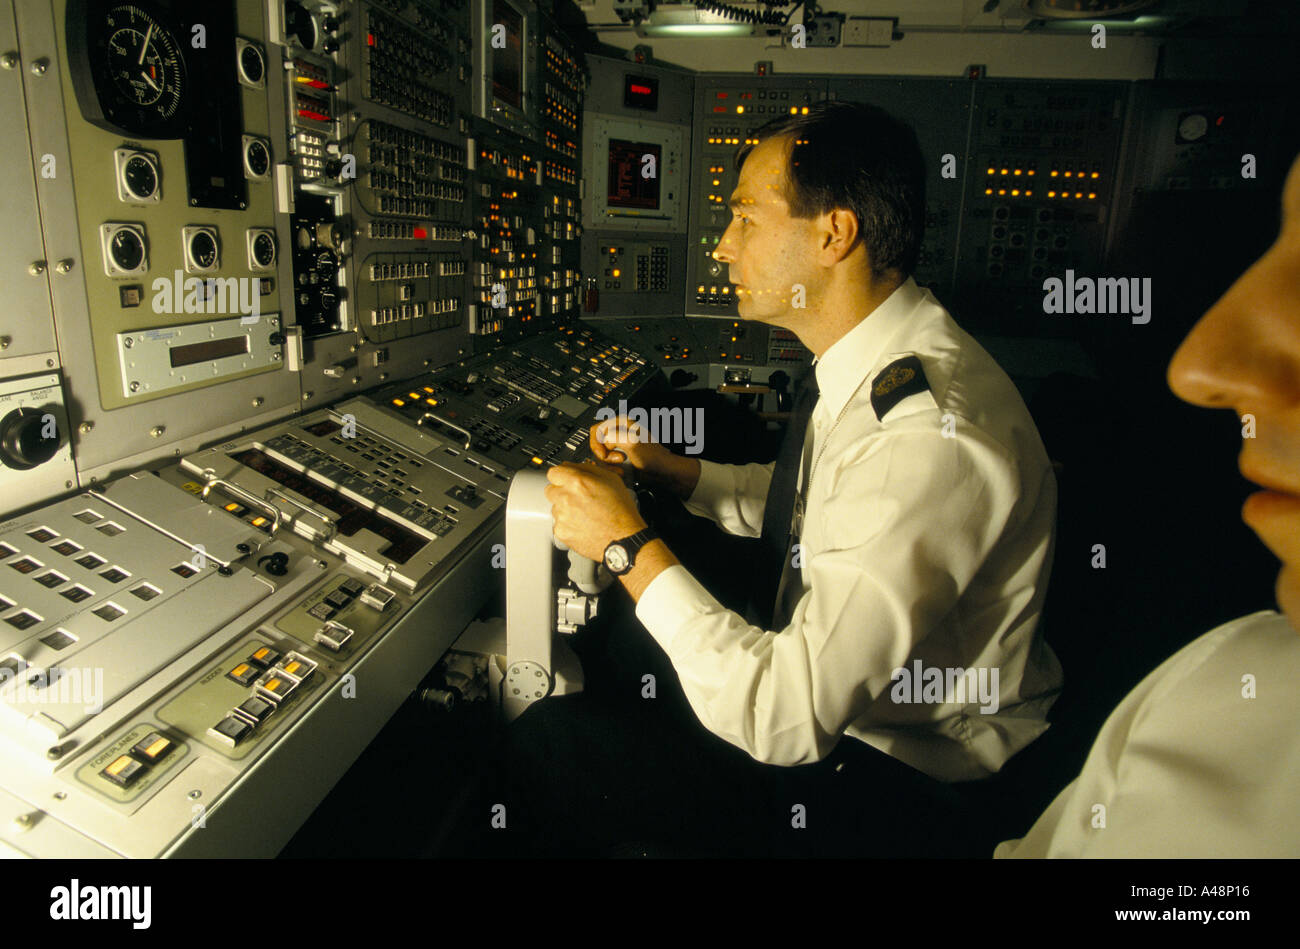 faslane naval base officers on control board of trident nuclear armed submarine - Stock Image